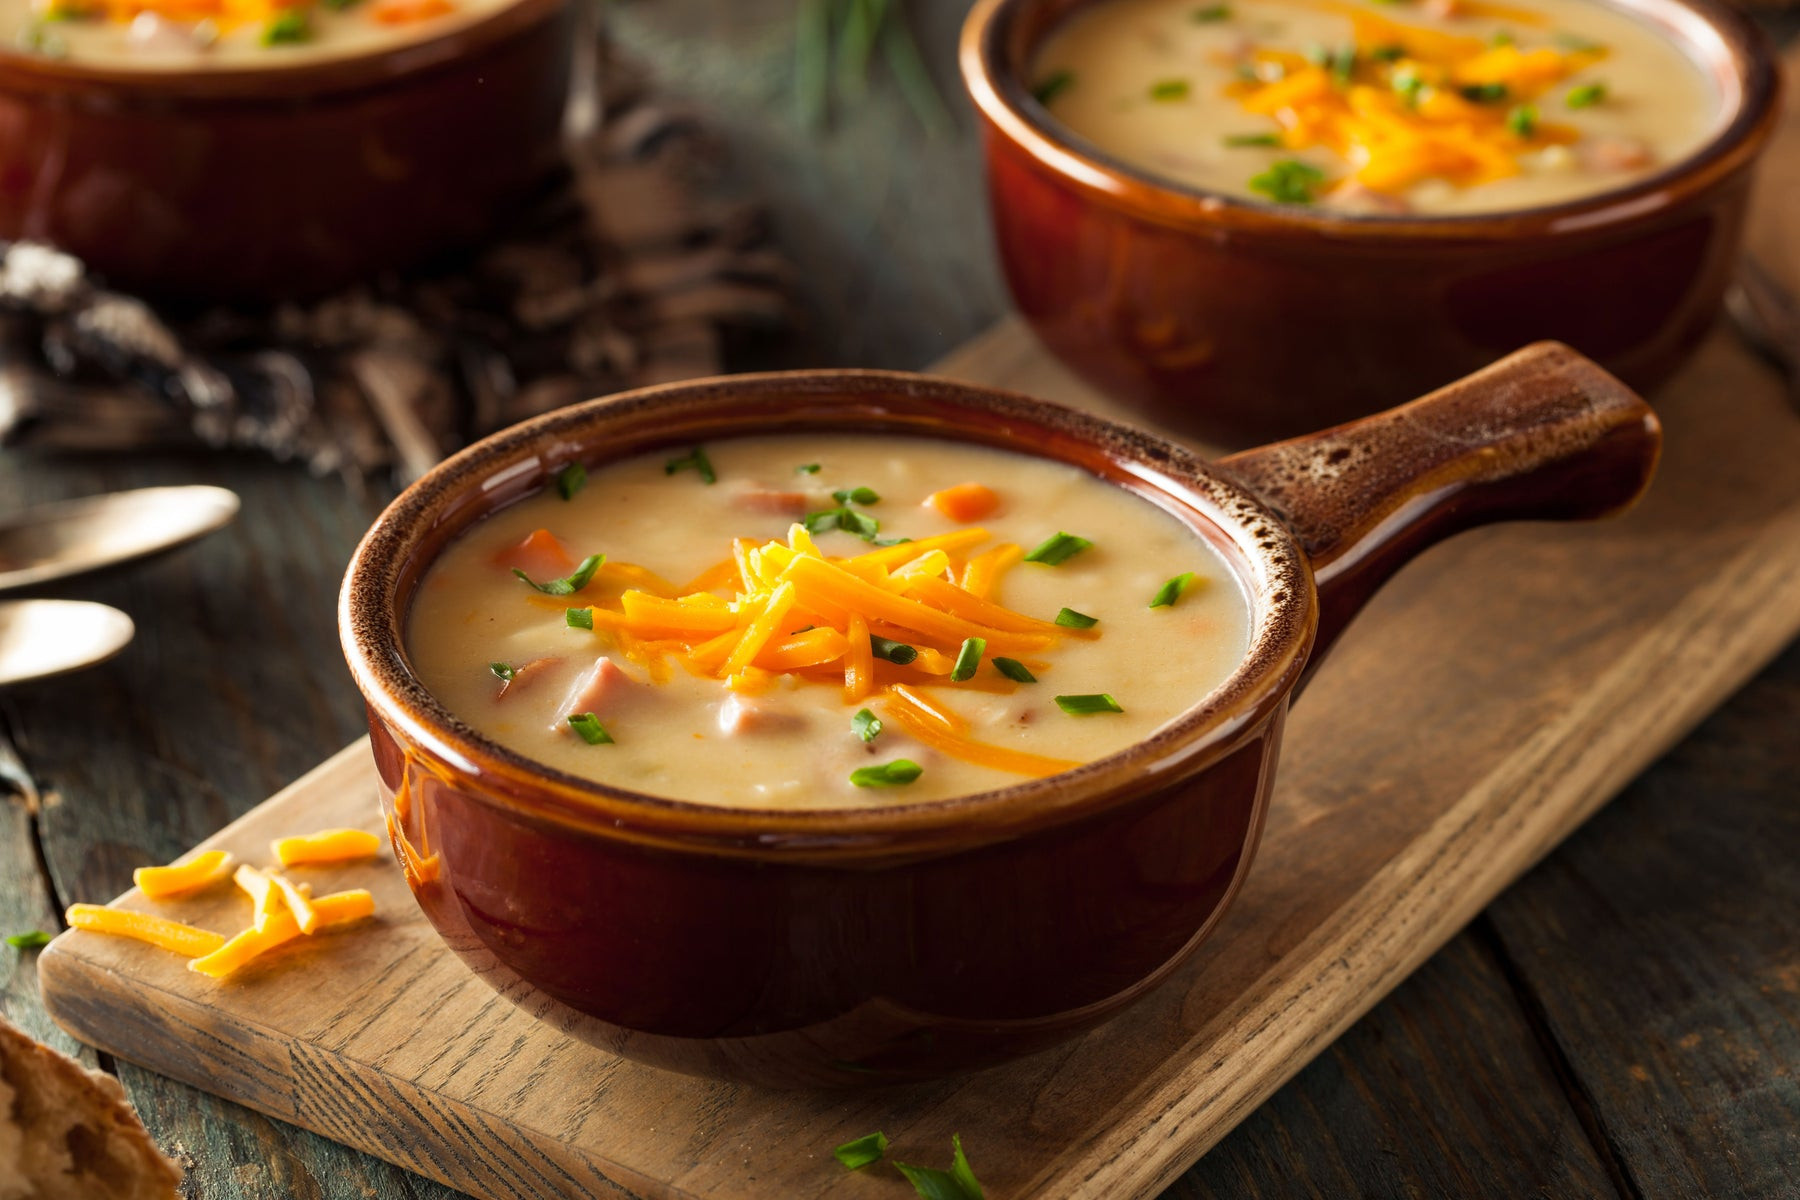 Cheddar and Beer Soup